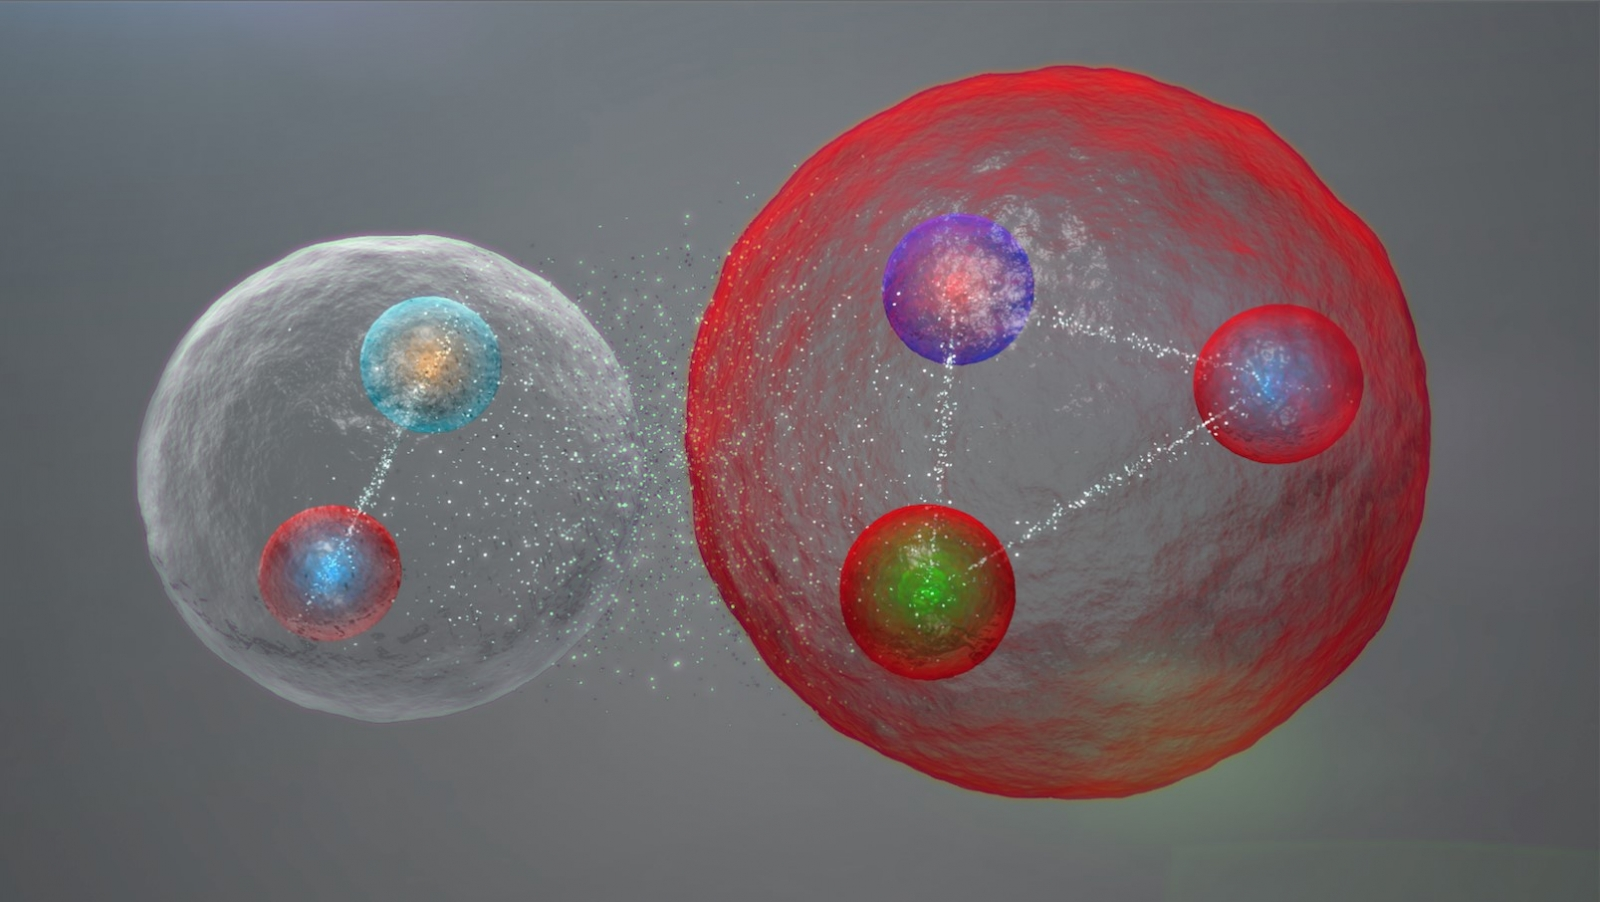 Large Hadron Collider Experiment Discovers Exotic